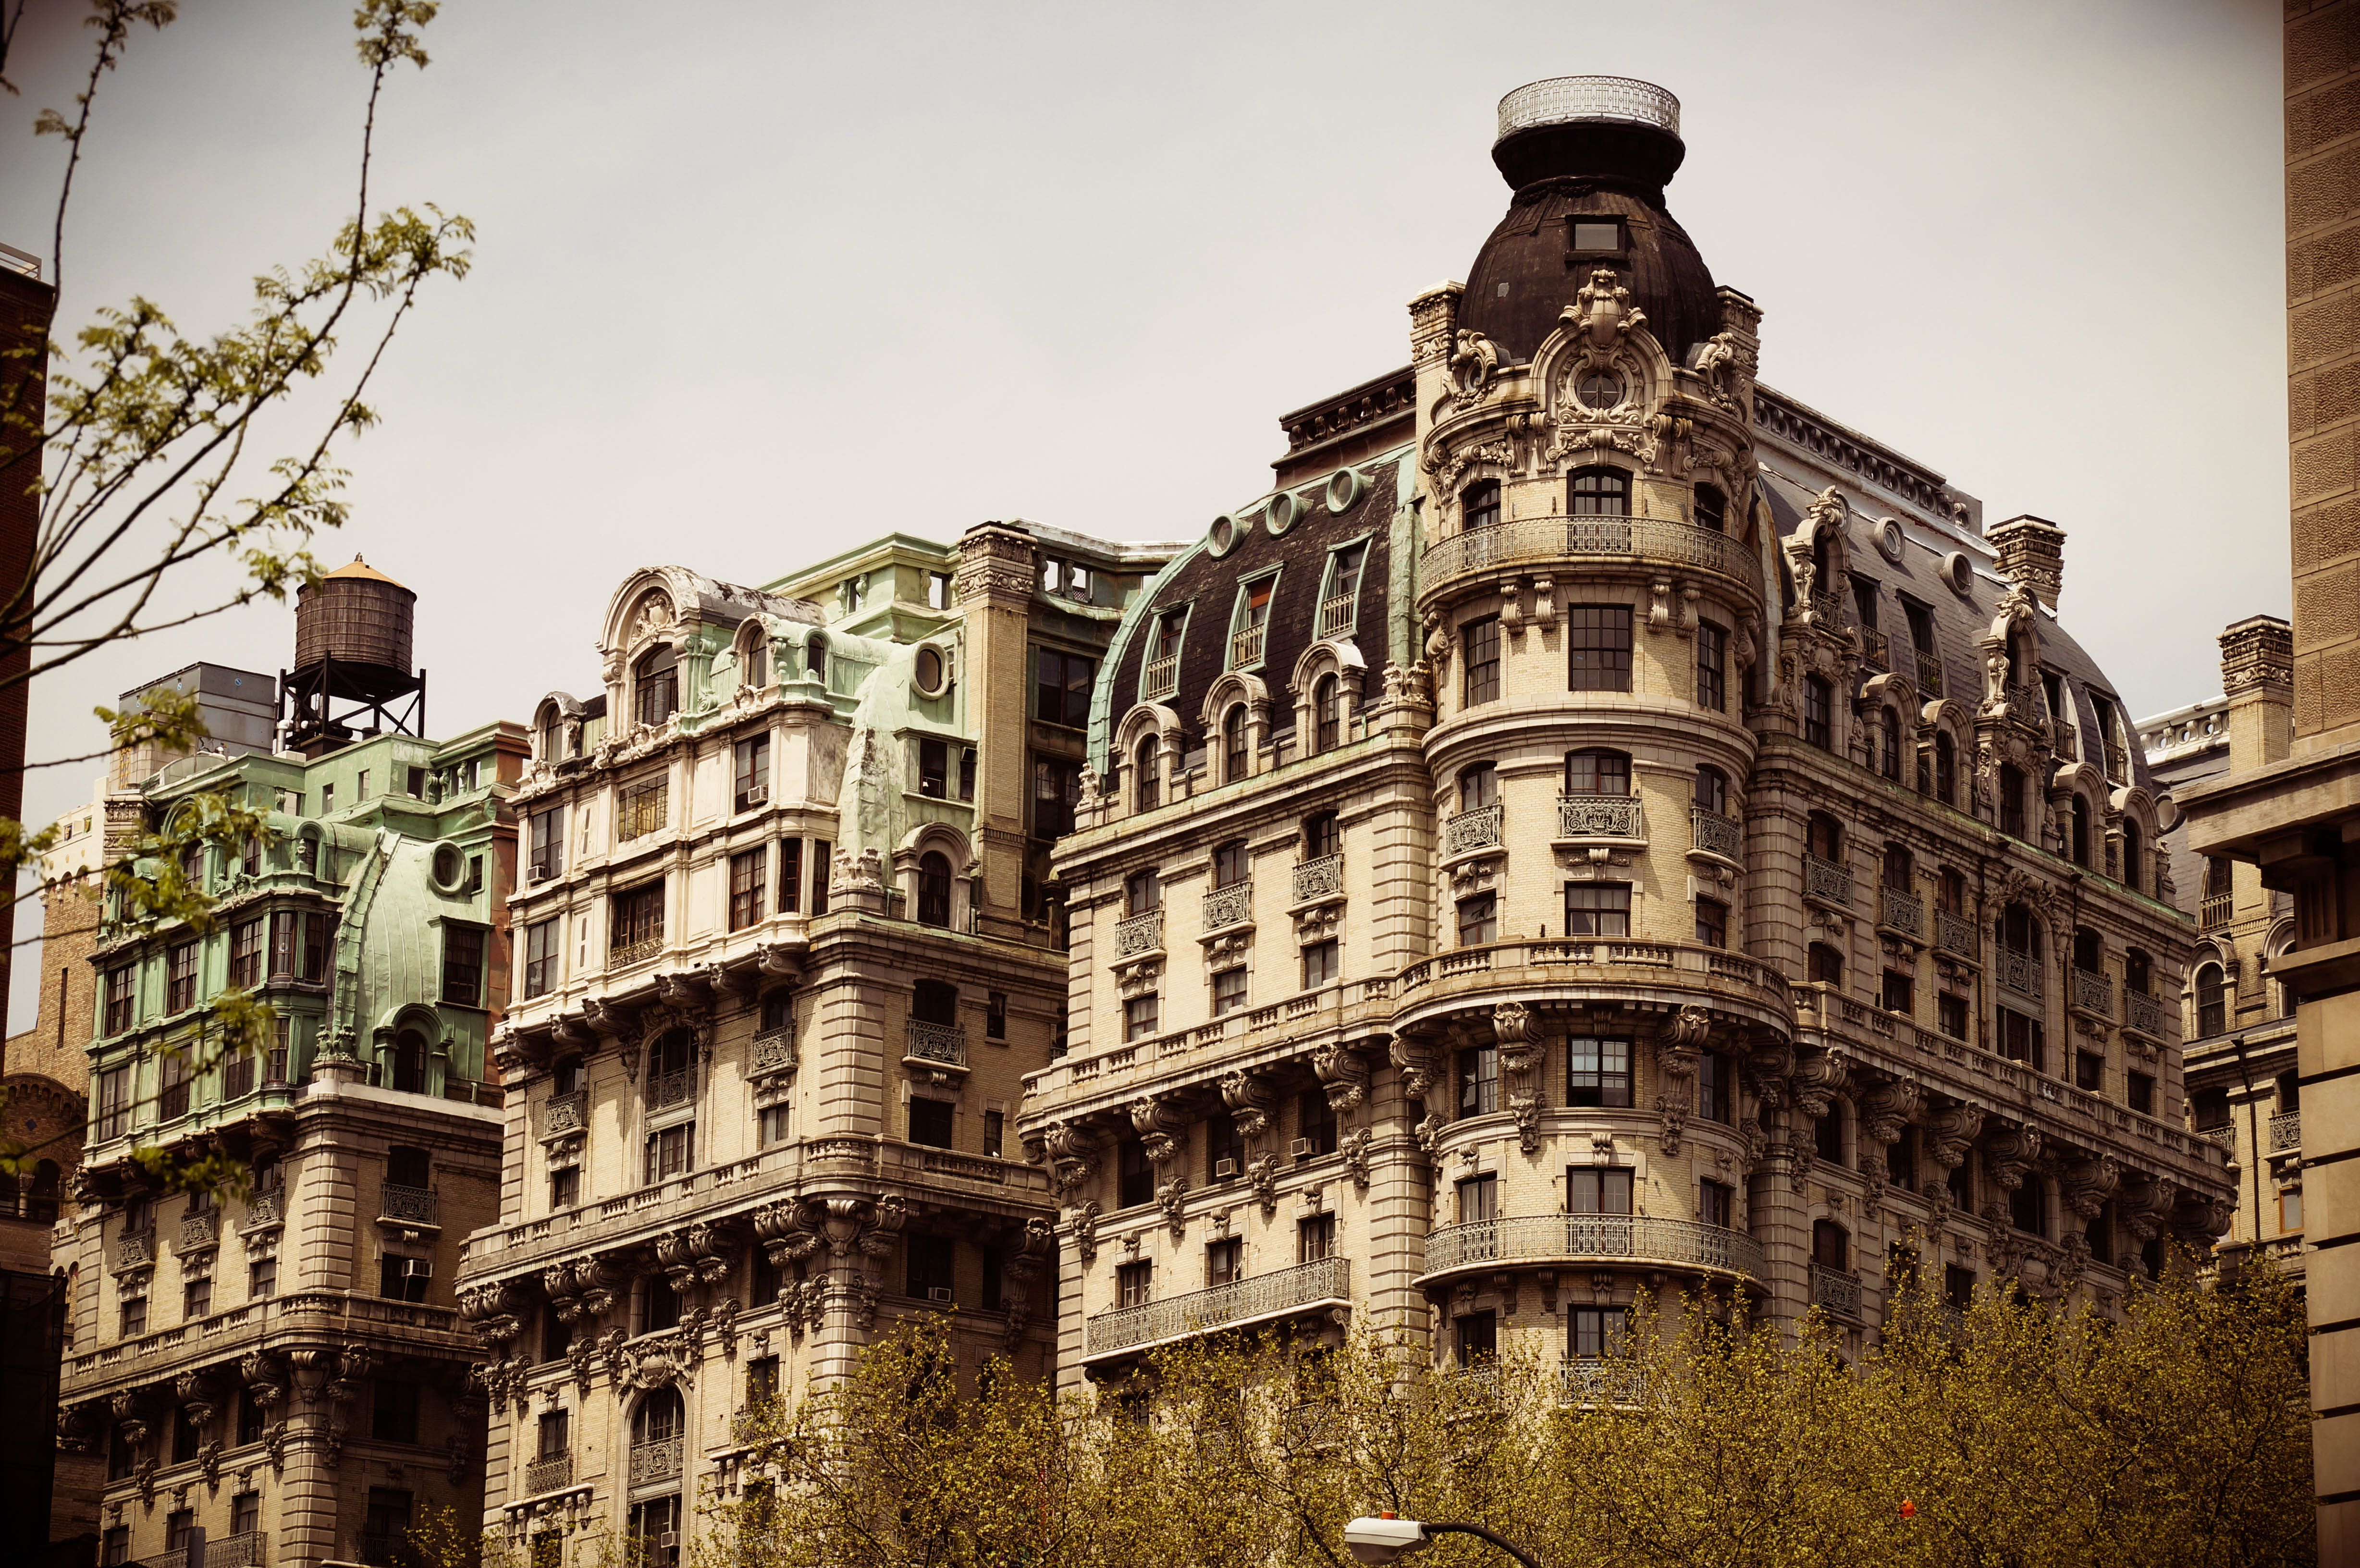 The Ansonia is a building on the Upper West Side of New York City ...